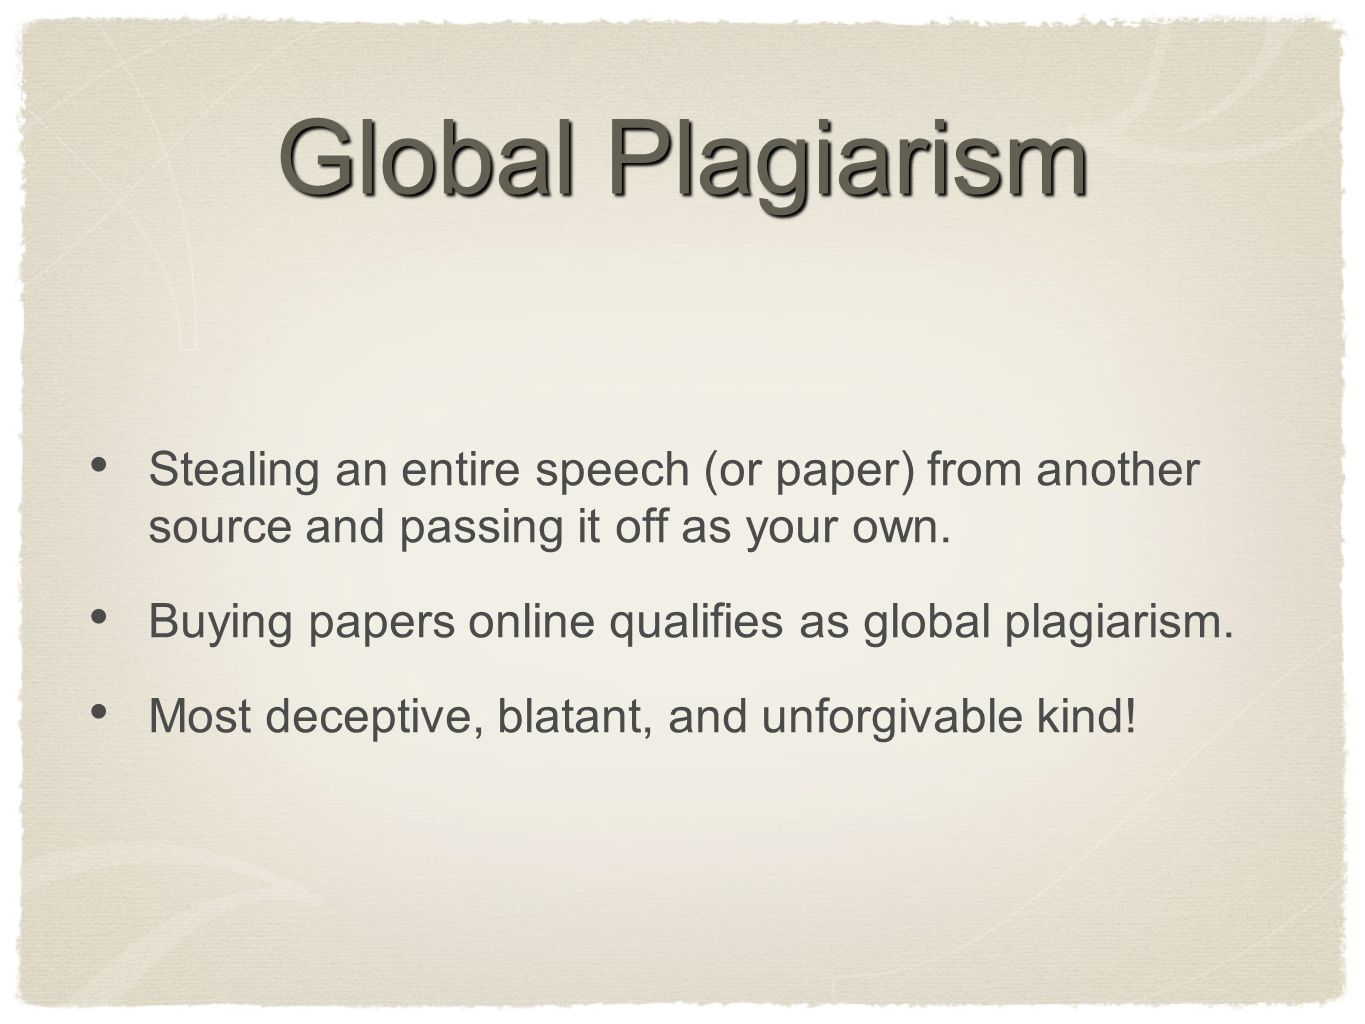 is buying a paper online plagiarism